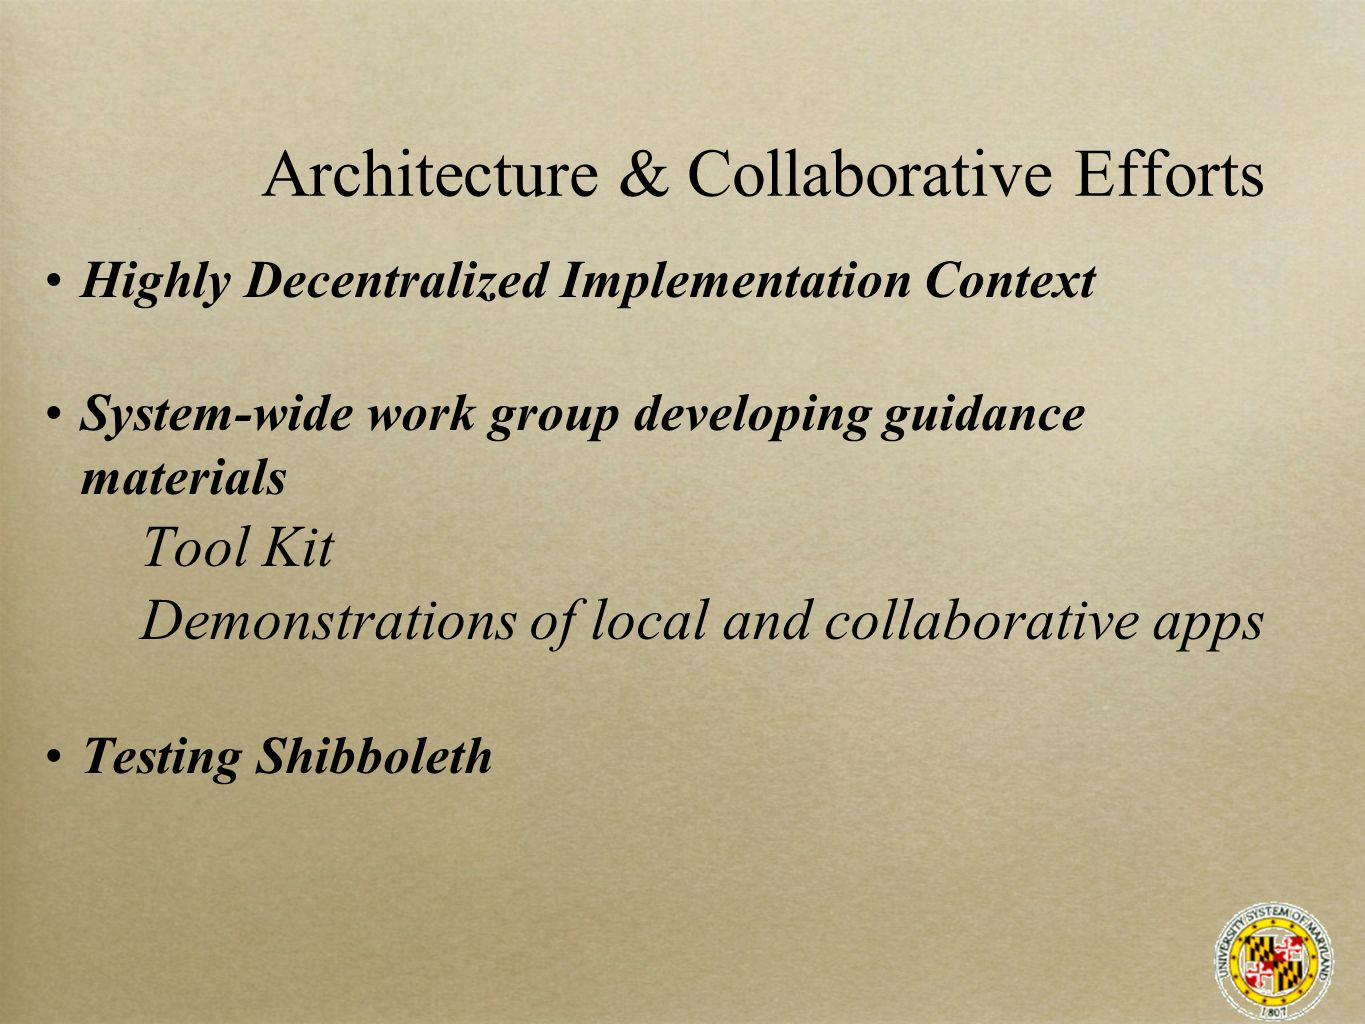 Architecture & Collaborative Efforts Highly Decentralized Implementation Context System-wide work group developing guidance materials Tool Kit Demonstrations of local and collaborative apps Testing Shibboleth